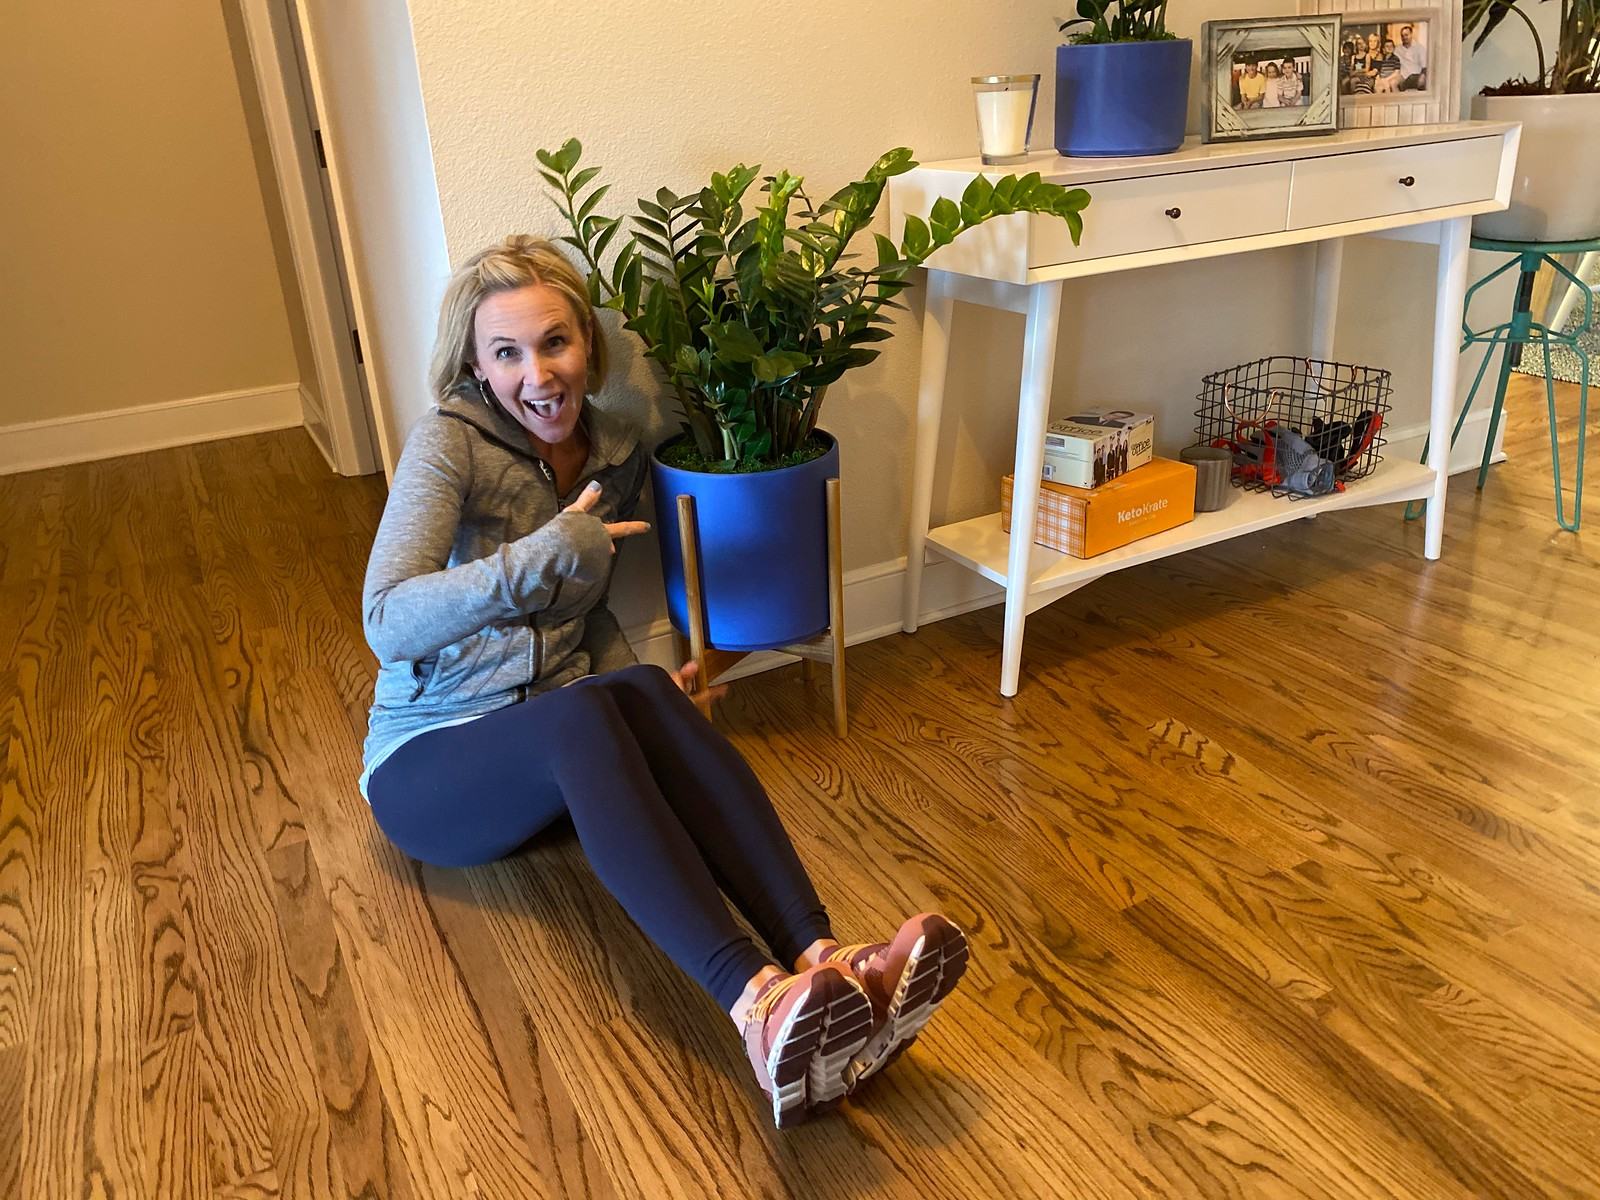 woman on the ground in home pointing at large potted plant